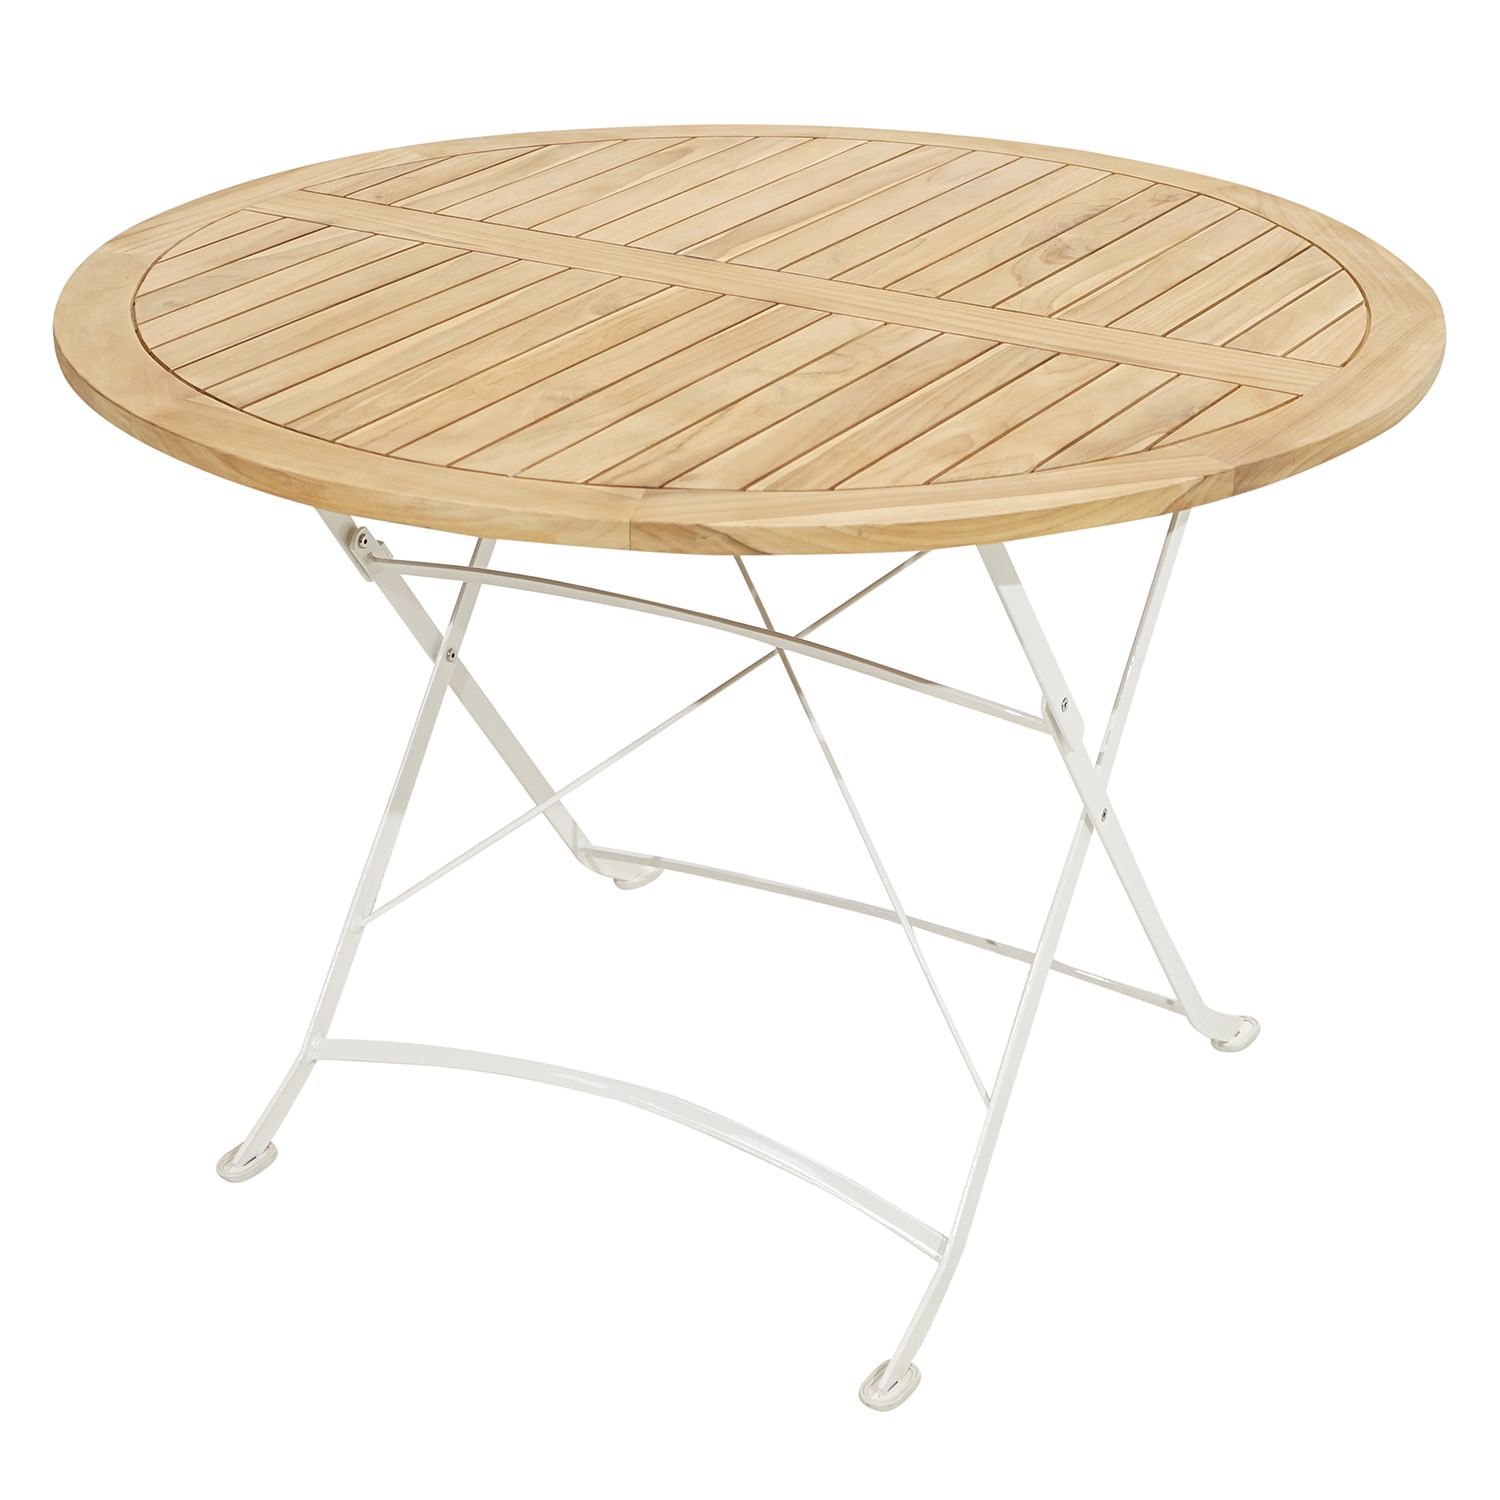 Table de jardin pliante Rom II